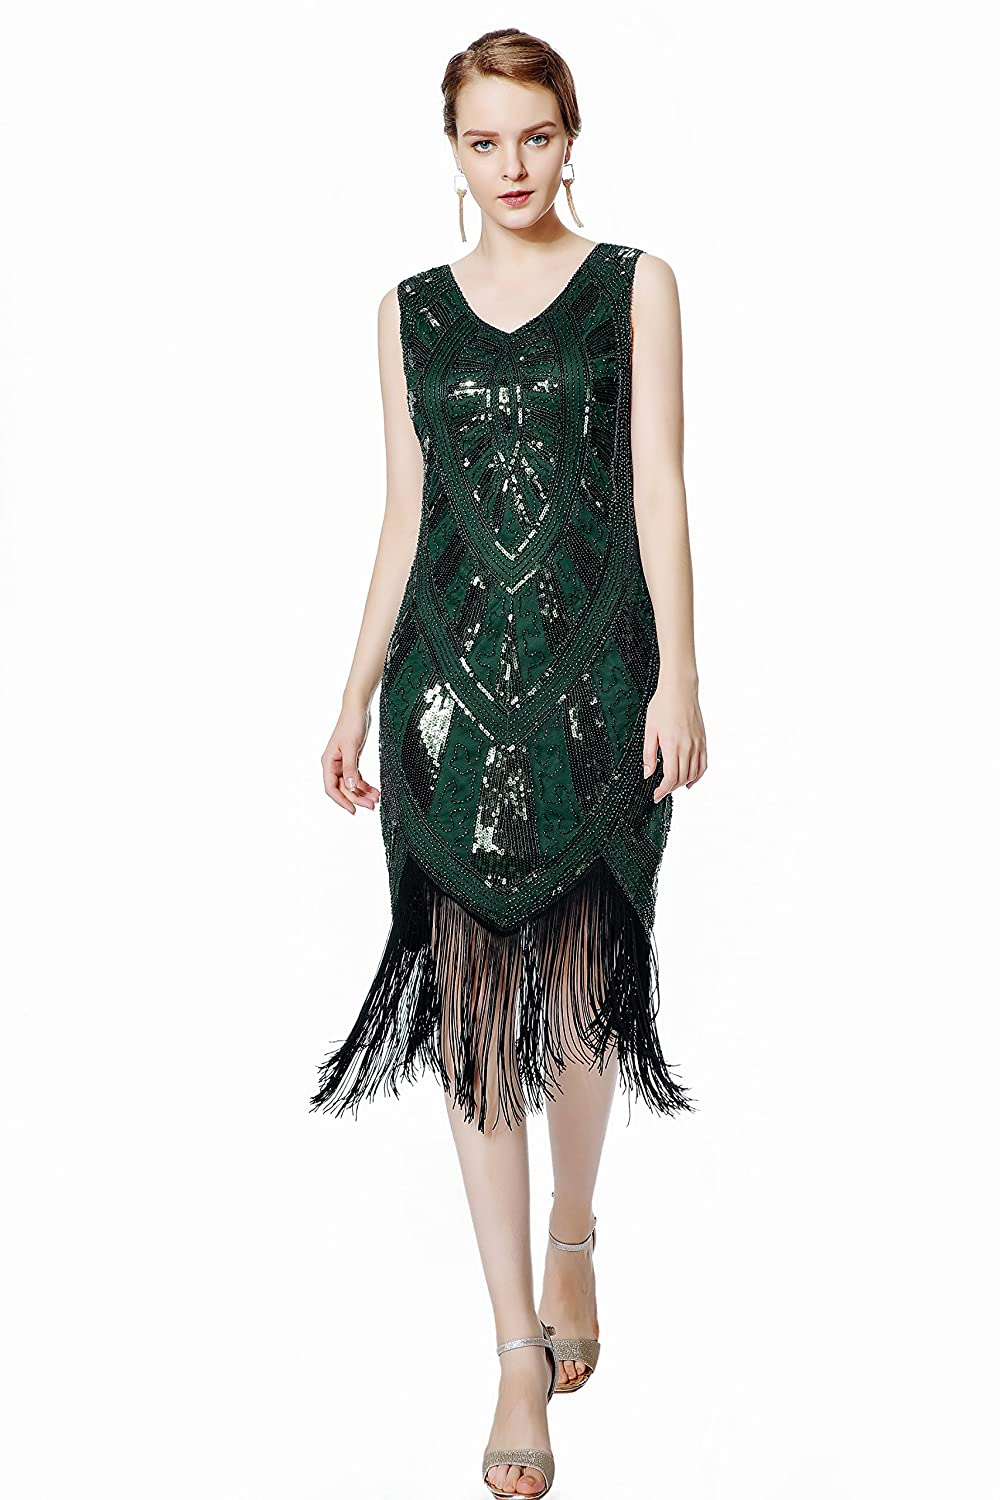 a53b463dfbf 1920s Clothing Metme 1920s Inspired Fringe Embellished Gatsby Flapper Midi  Dress Prom Party £49.99 AT